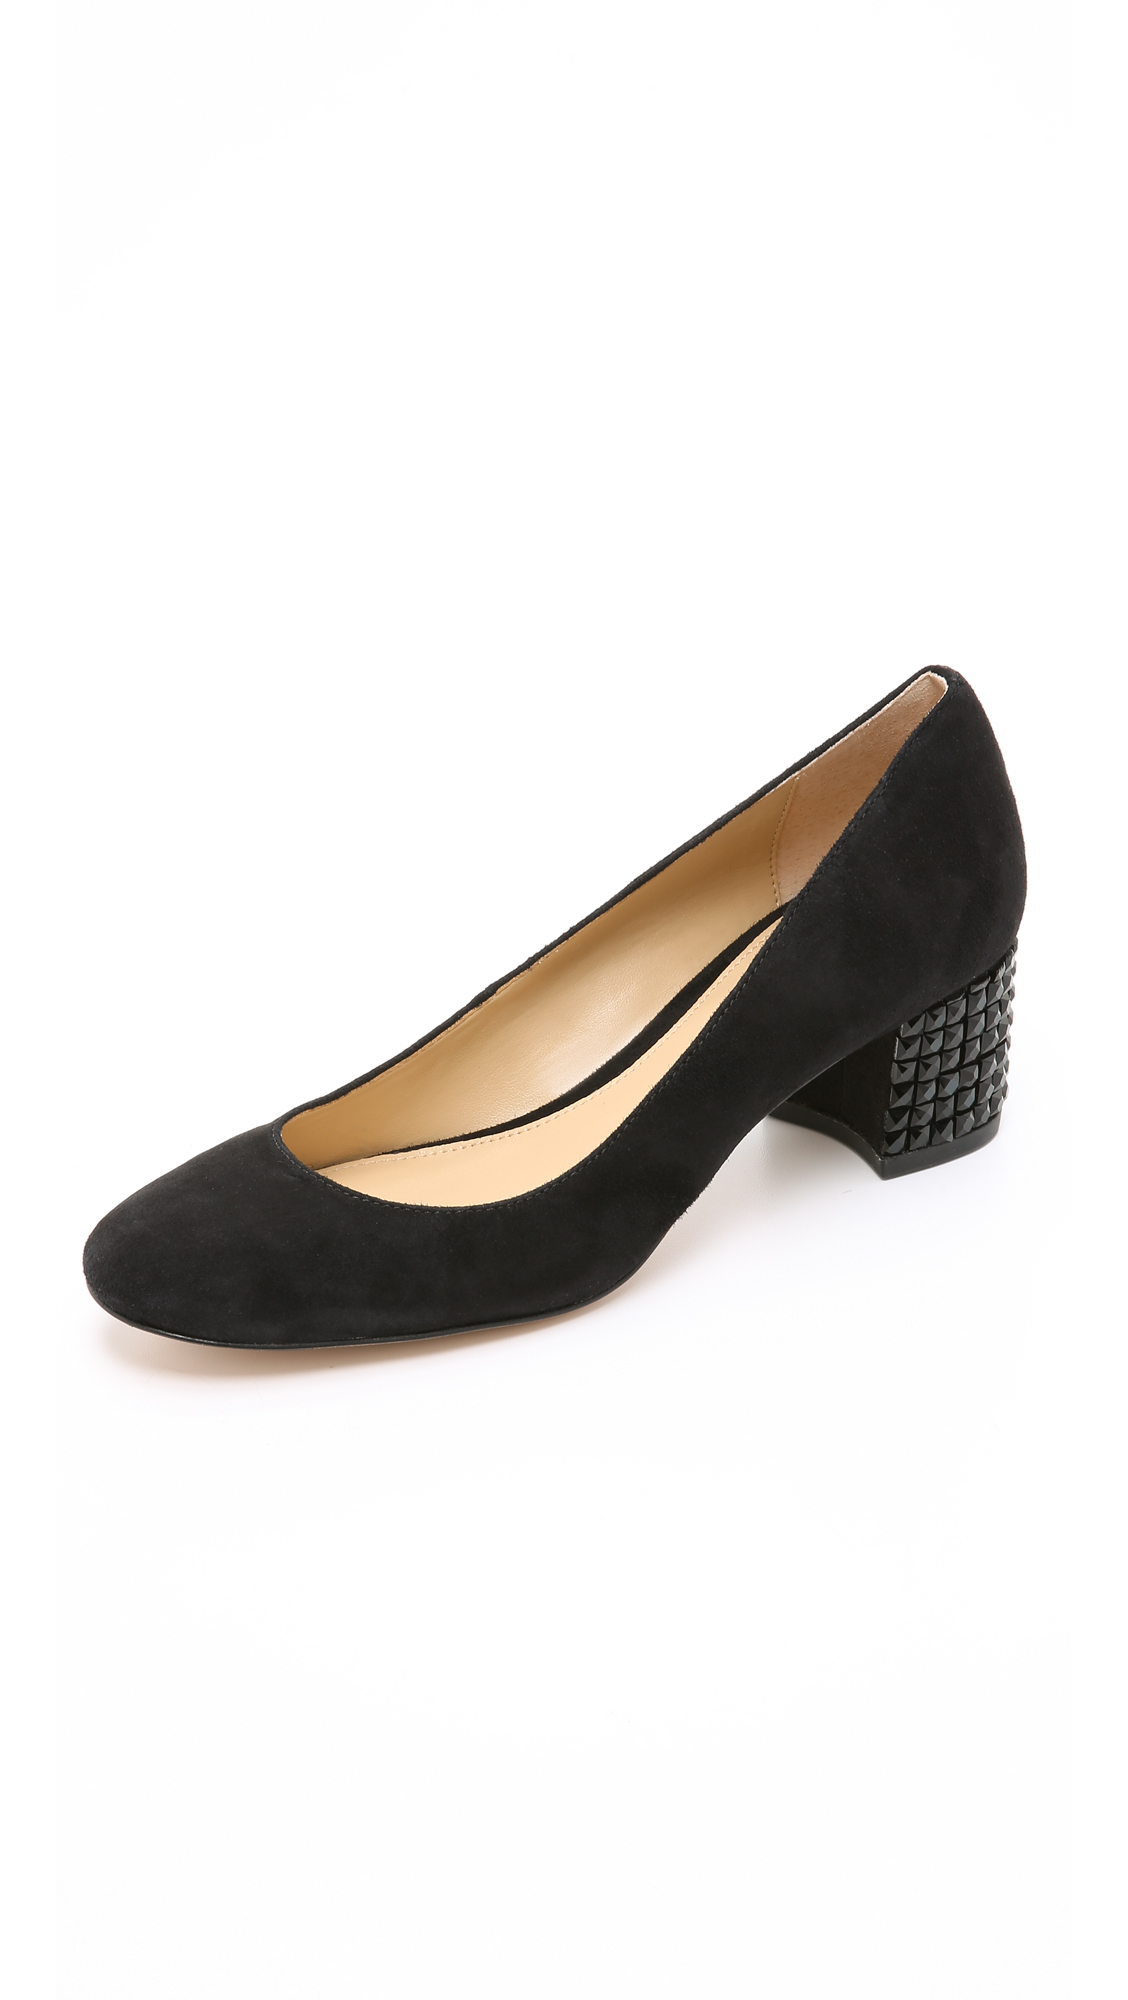 Michael michael kors Arabella Suede Kitten Heel Pumps in Black  Lyst